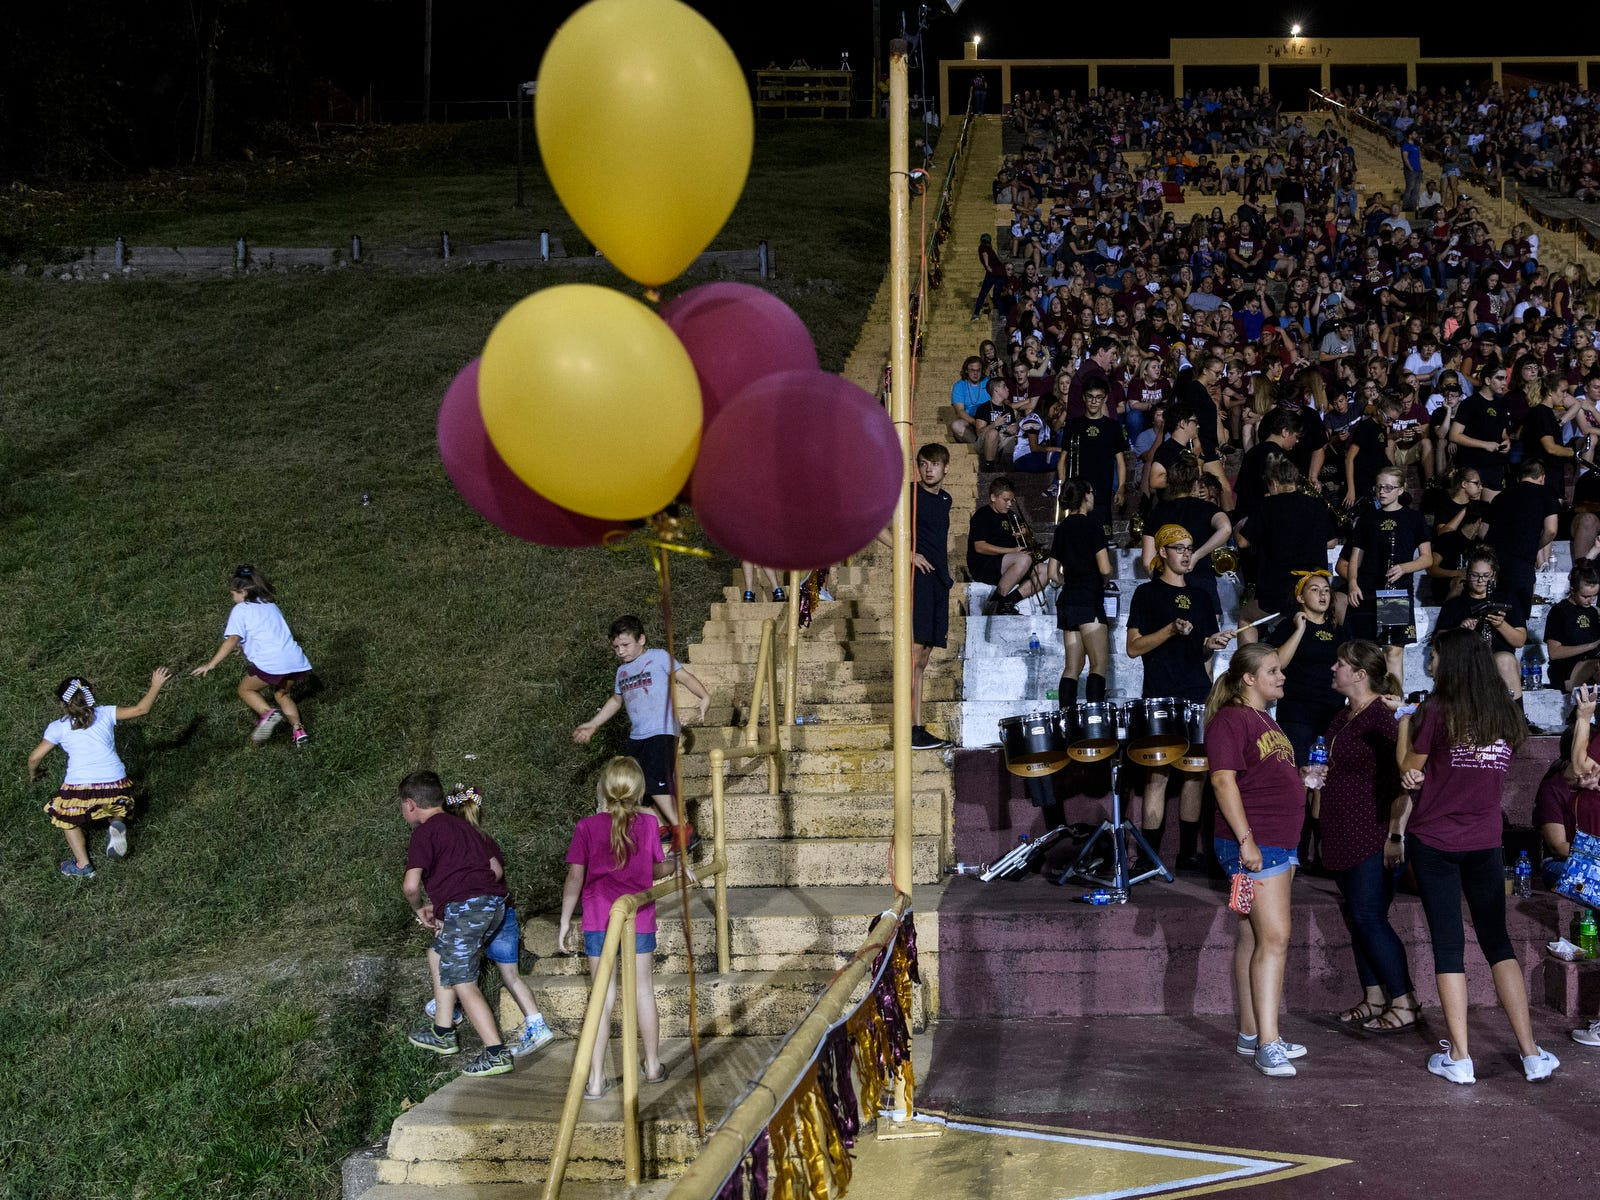 Riverview Stadium, known as the Snake Pit, is full of people during the Mount Carmel Golden Aces Homecoming game against the Washington Hatchets in Mount Carmel, Ill., Friday evening, Sept. 21, 2018. The Golden Aces defeated the Hatchets 61-20.